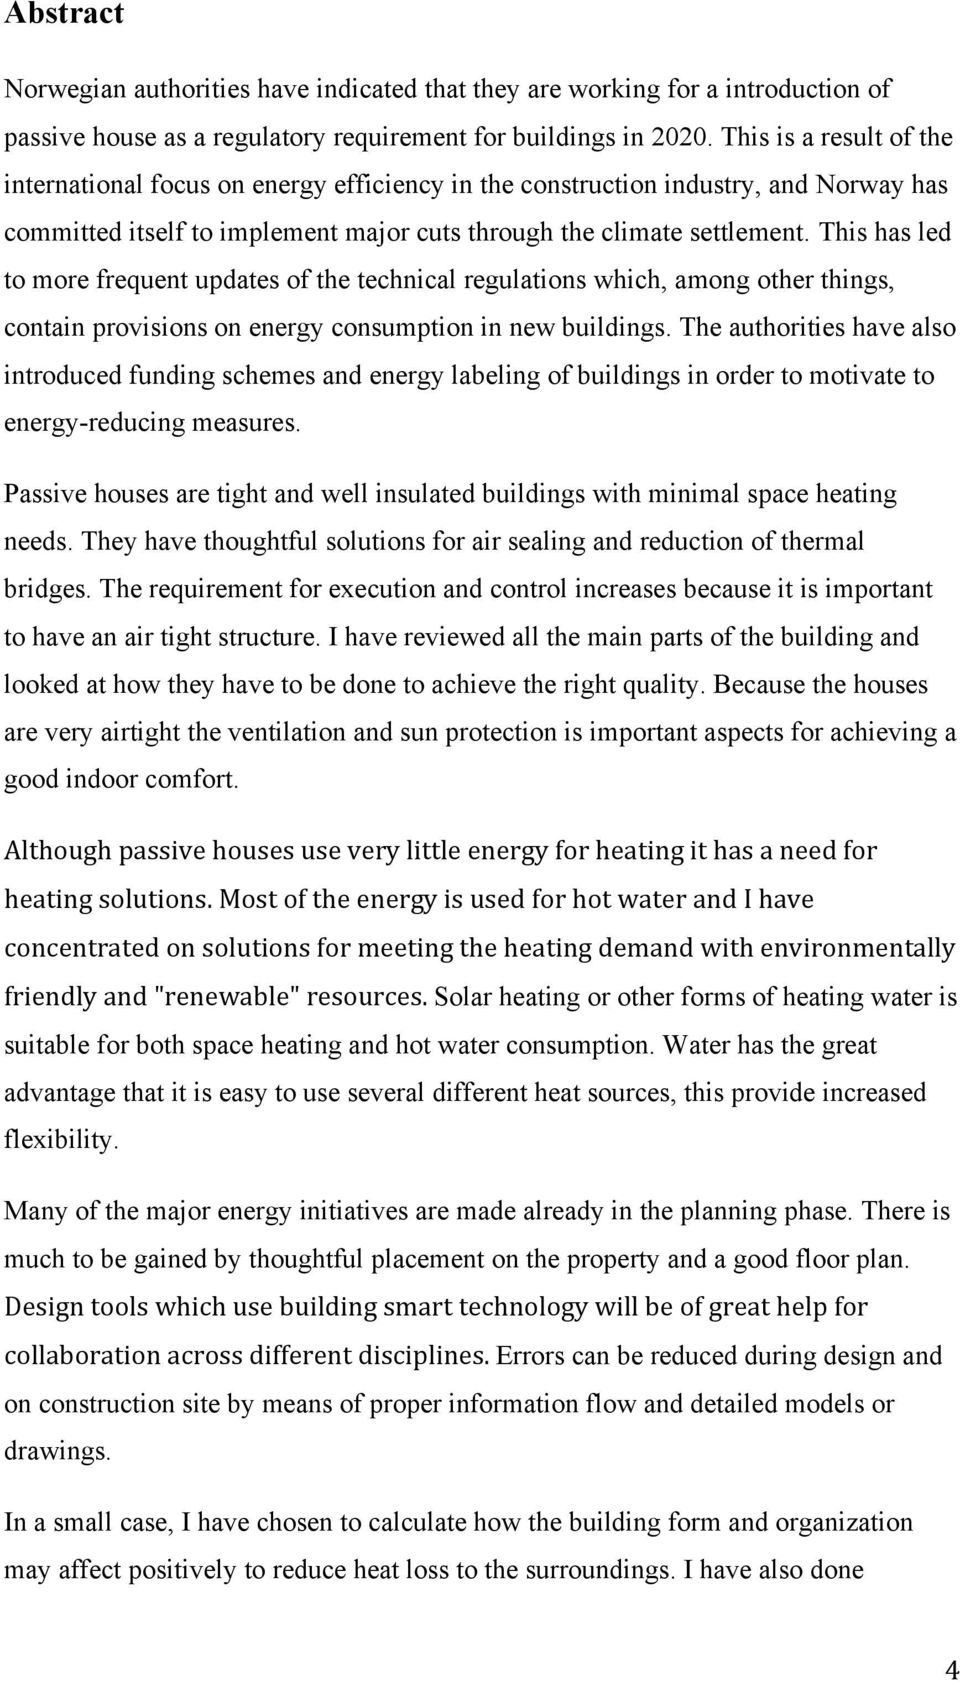 This has led to more frequent updates of the technical regulations which, among other things, contain provisions on energy consumption in new buildings.